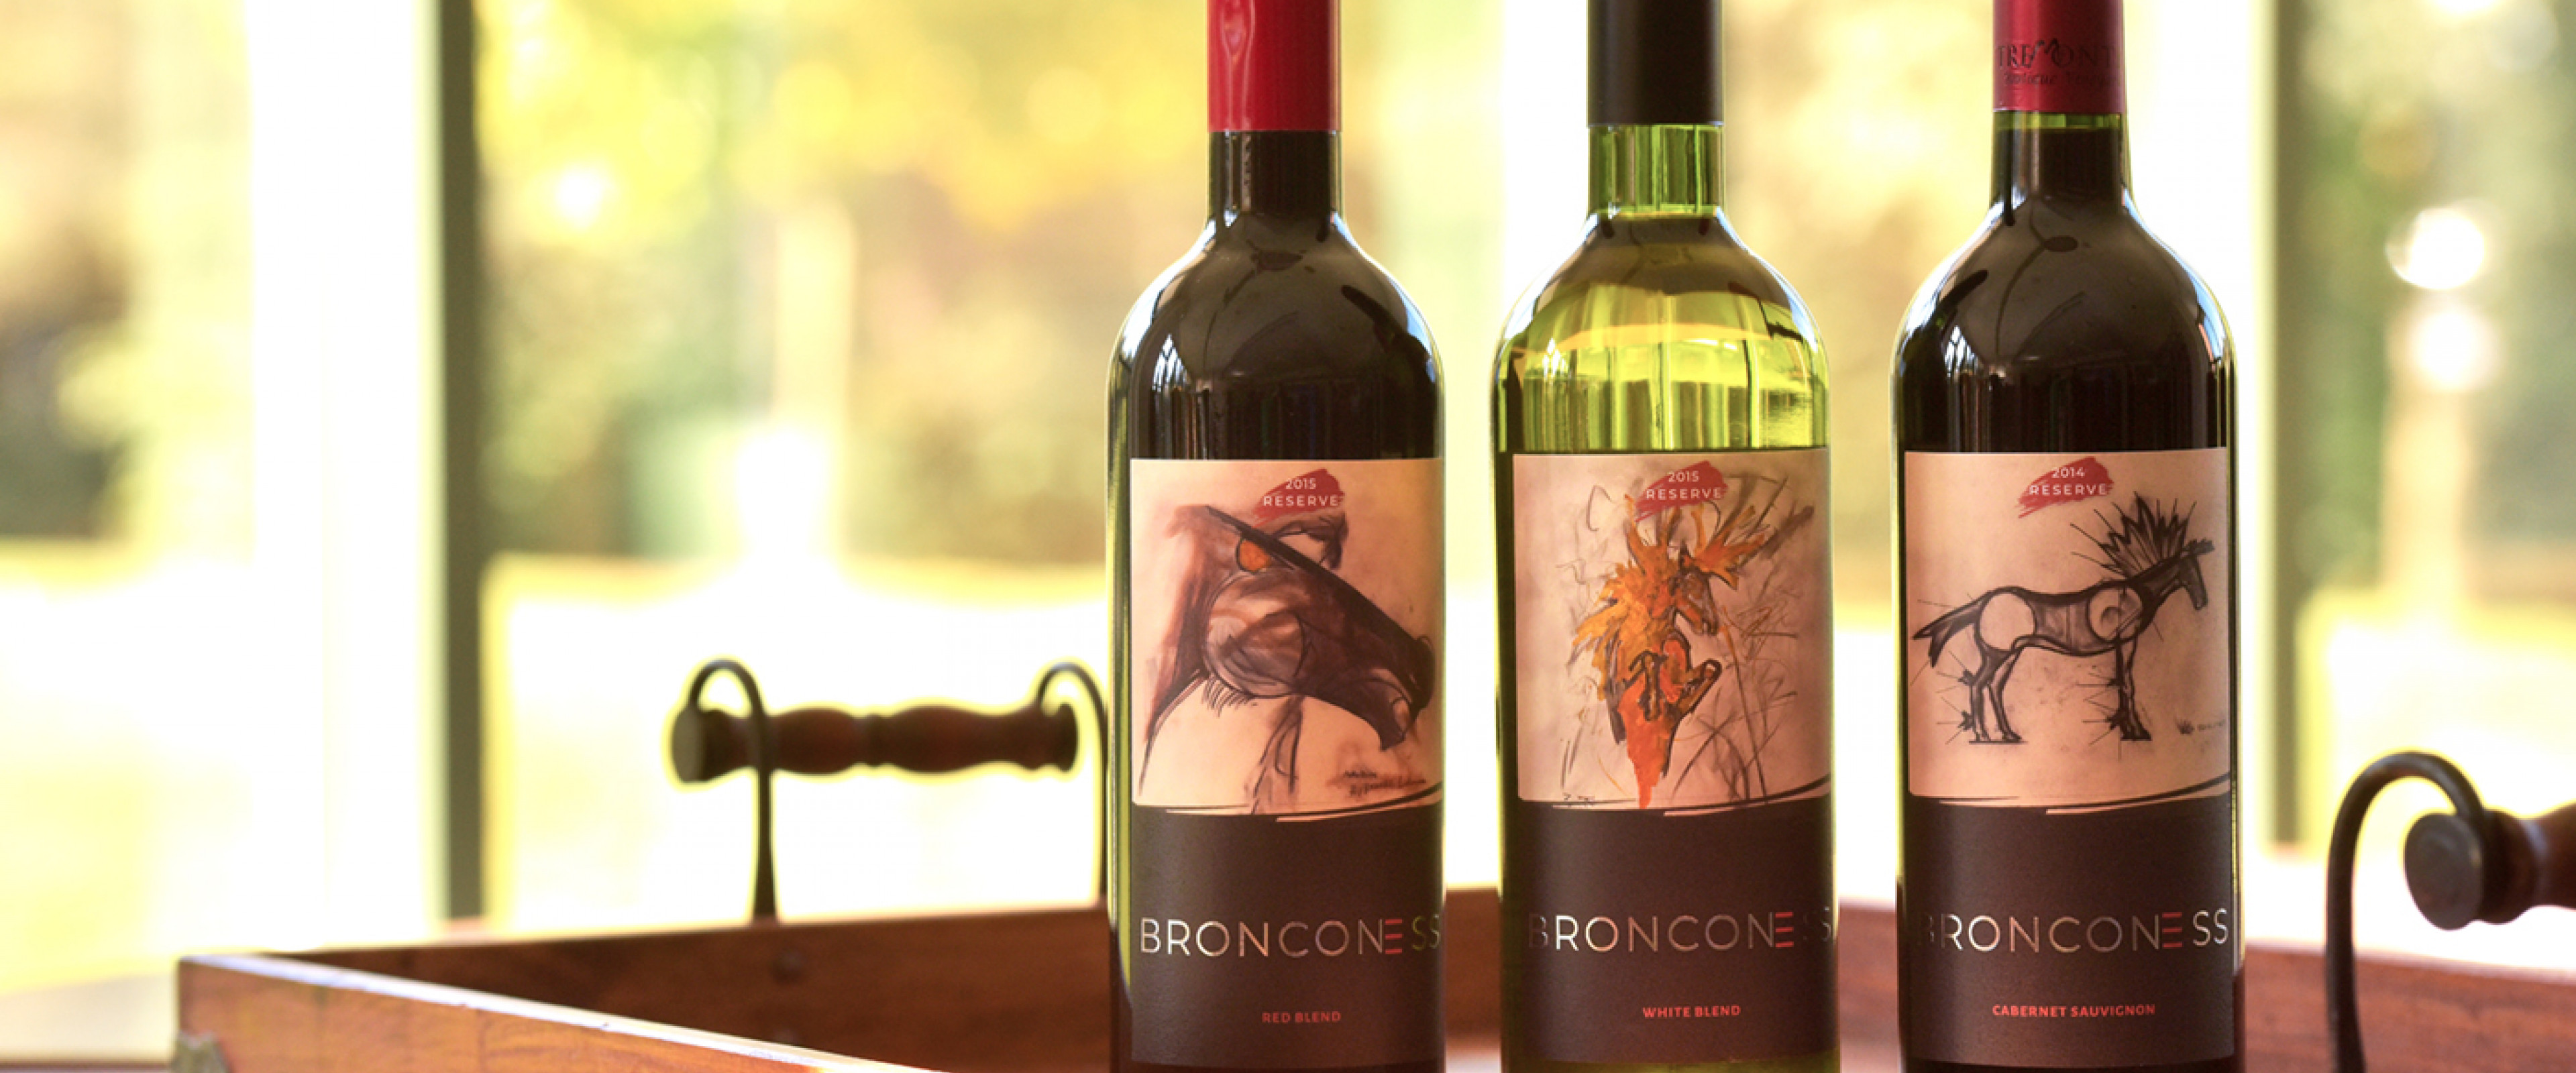 Pictured is the Bronconess wine set.